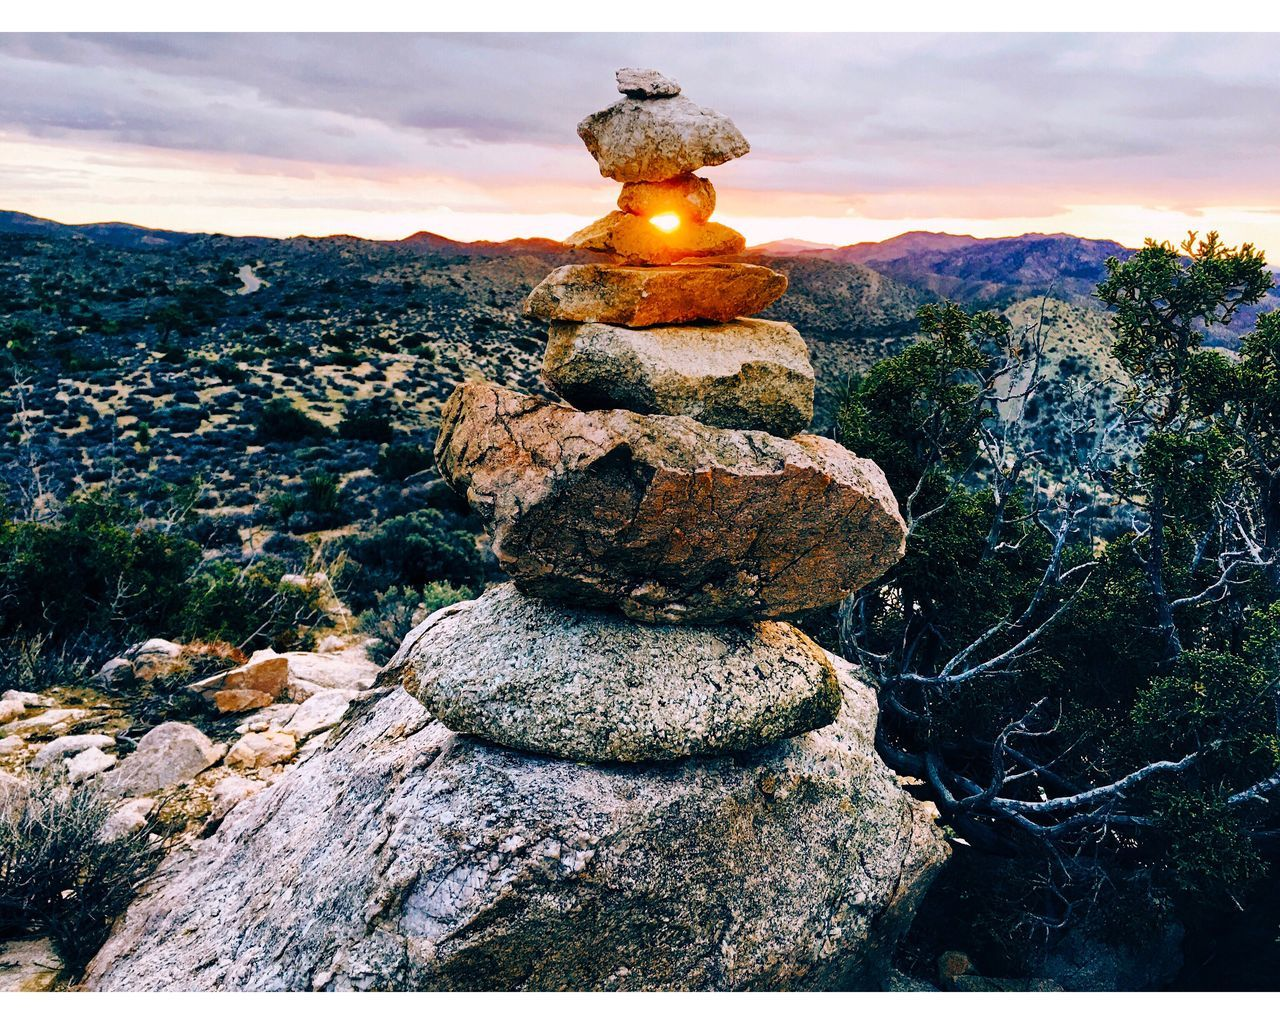 Stack Tranquil Scene Beauty In Nature Rock - Object Stone - Object Outdoors IPhone Photography Sunrise